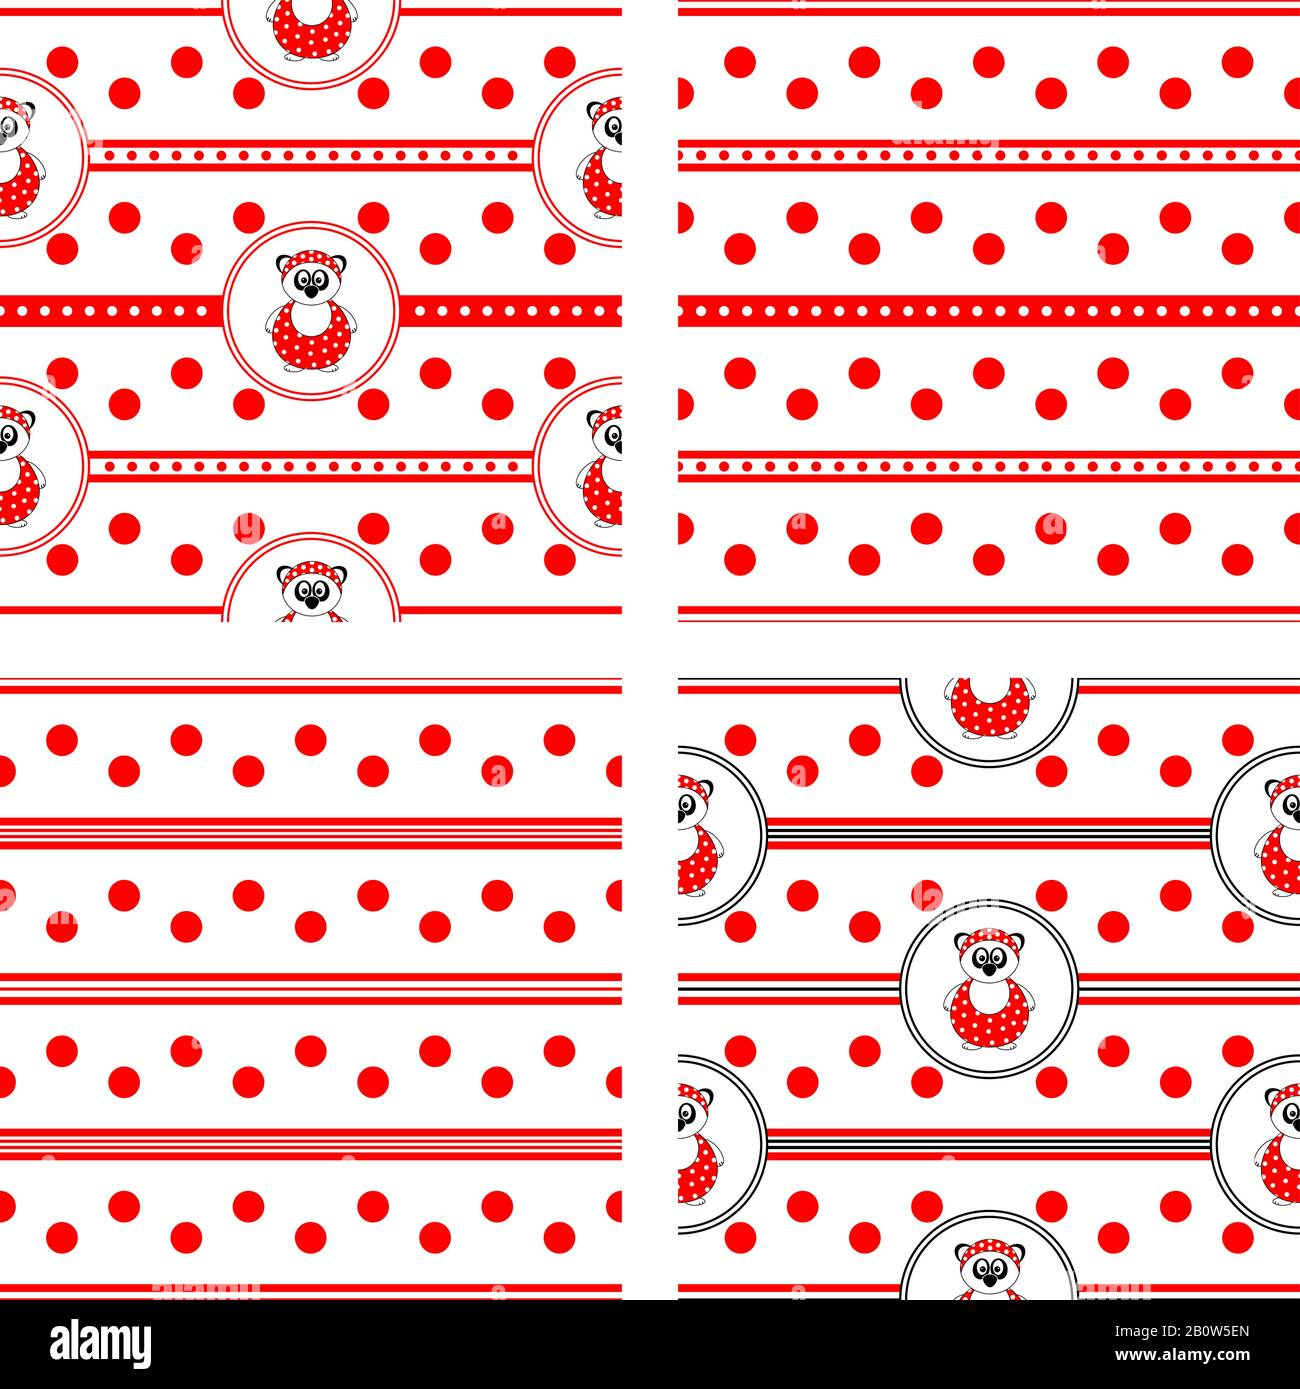 set of four seamless vector patterns with panda bear in bathing suit and red polka dots and stripes Stock Vector